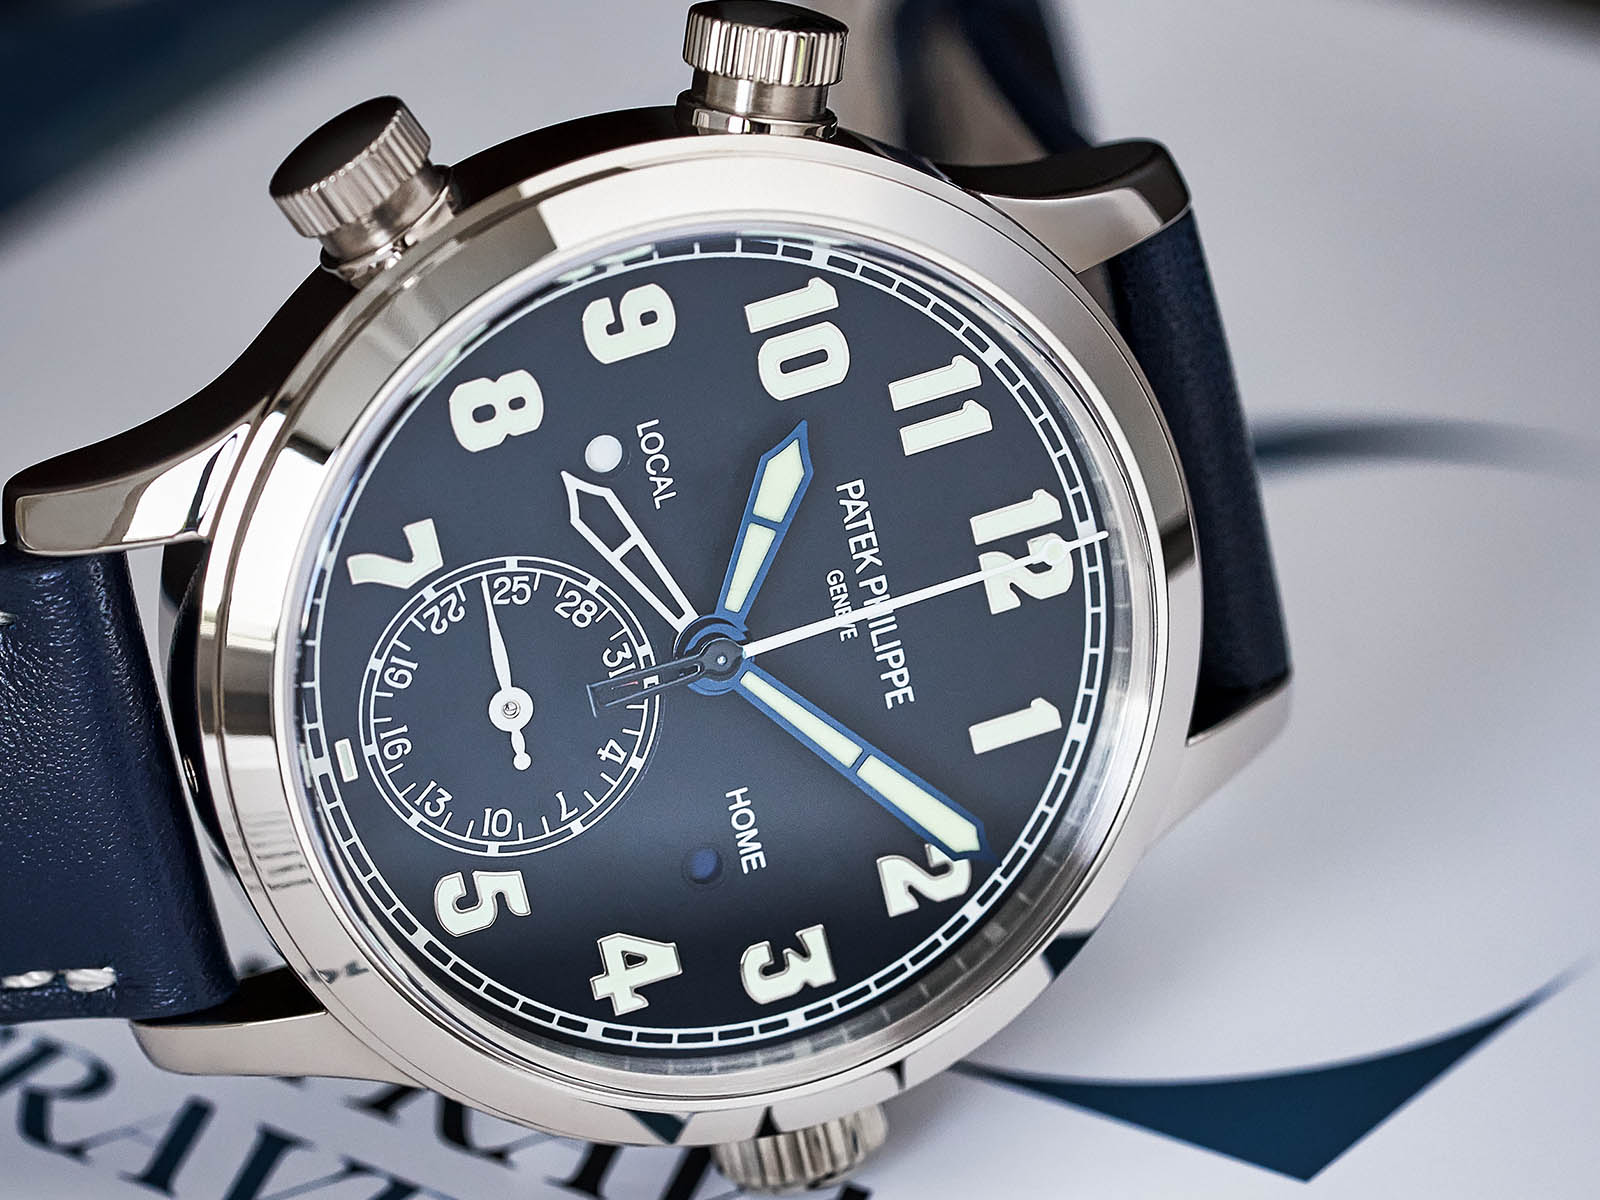 7234g-001-patek-philippe-calatrava-pilot-travel-time-2.jpg